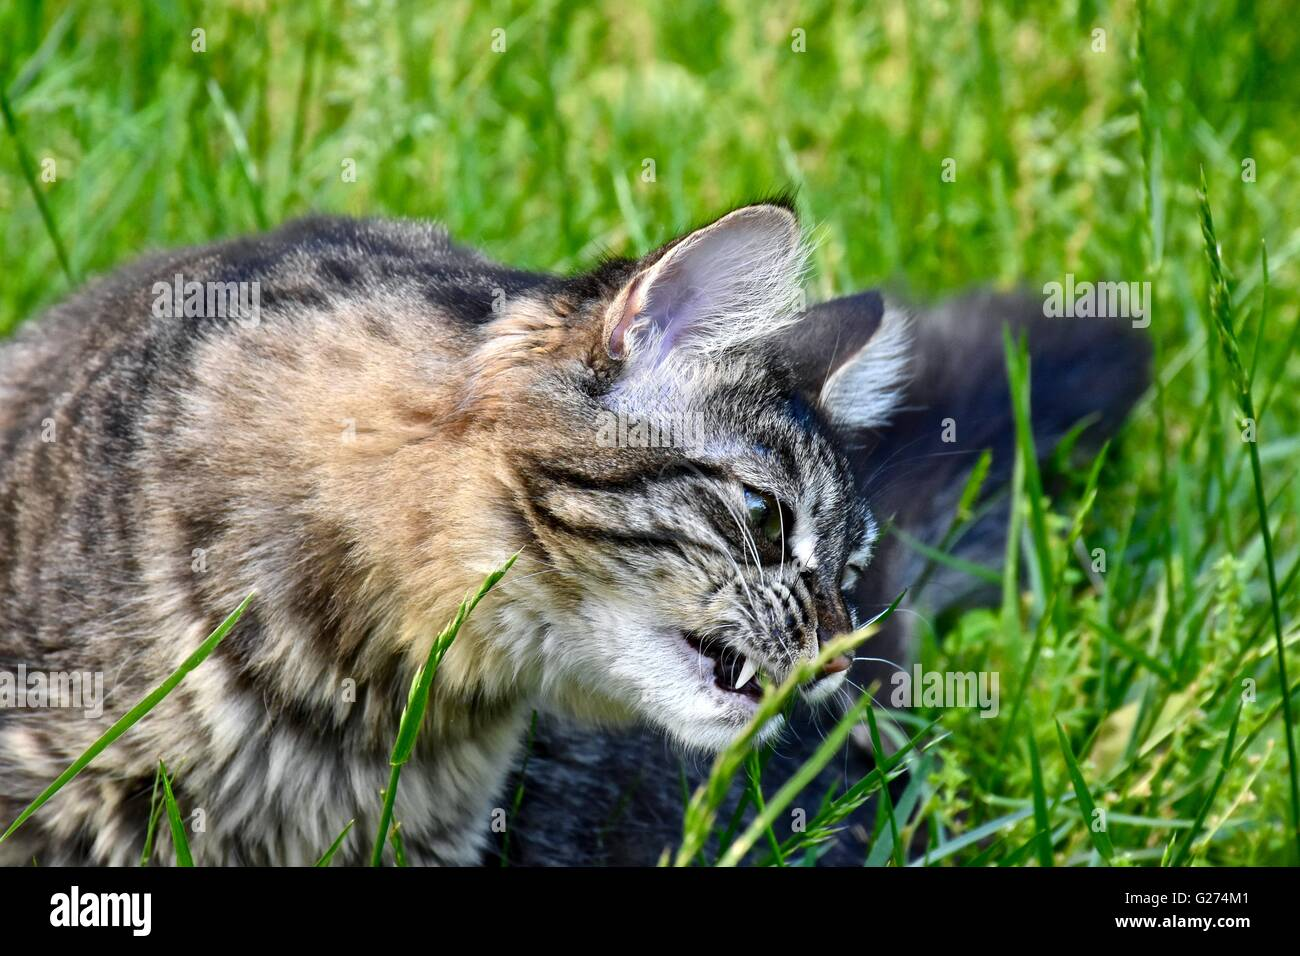 A cute cat playing outside in the grass Stock Royalty Free